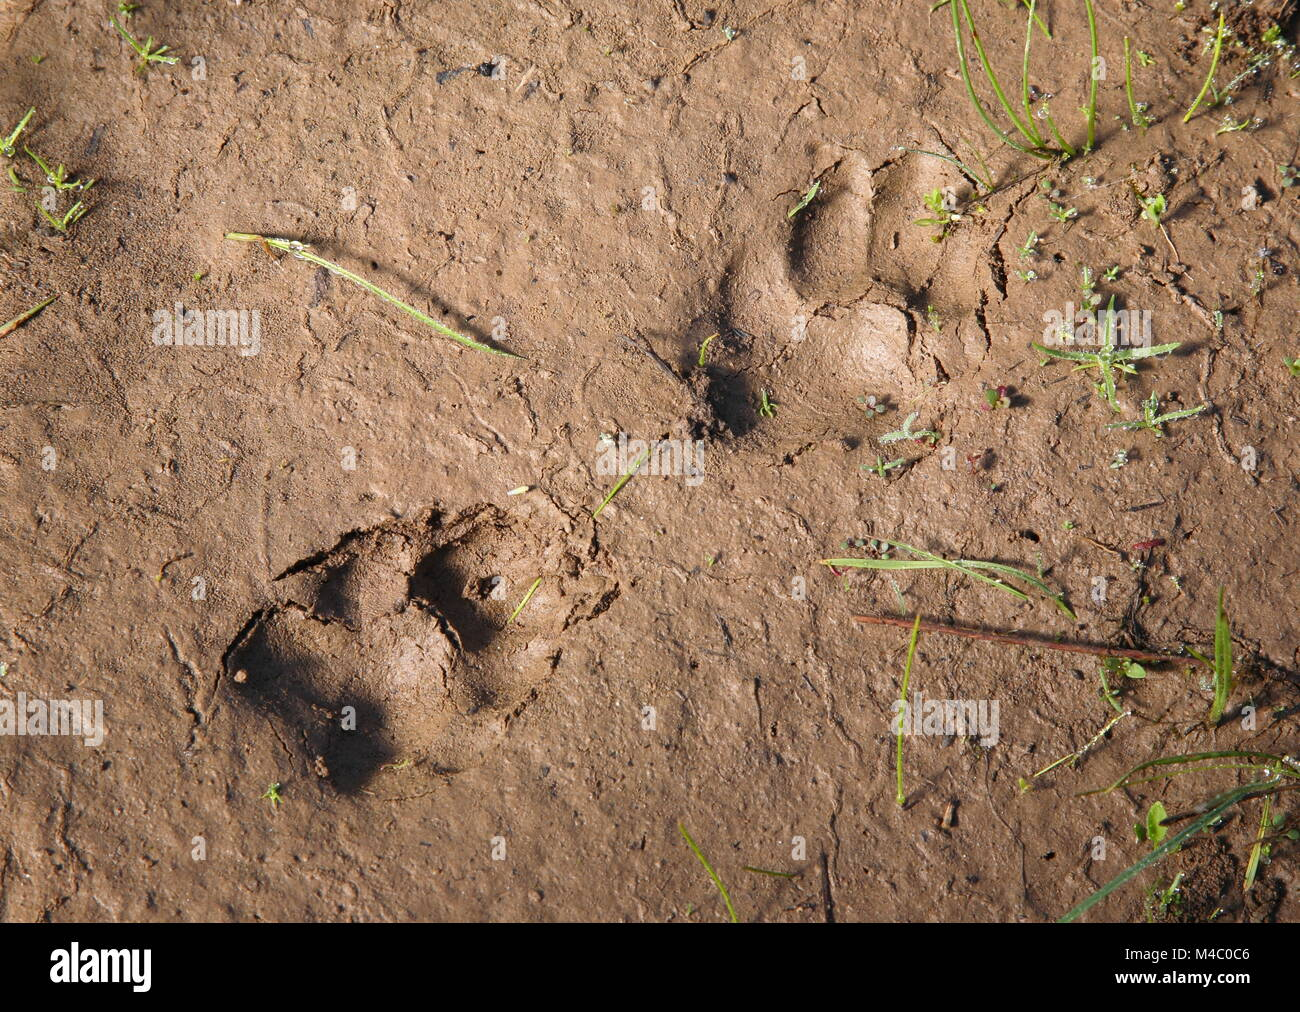 fresh coyote tracks in mud - Stock Image